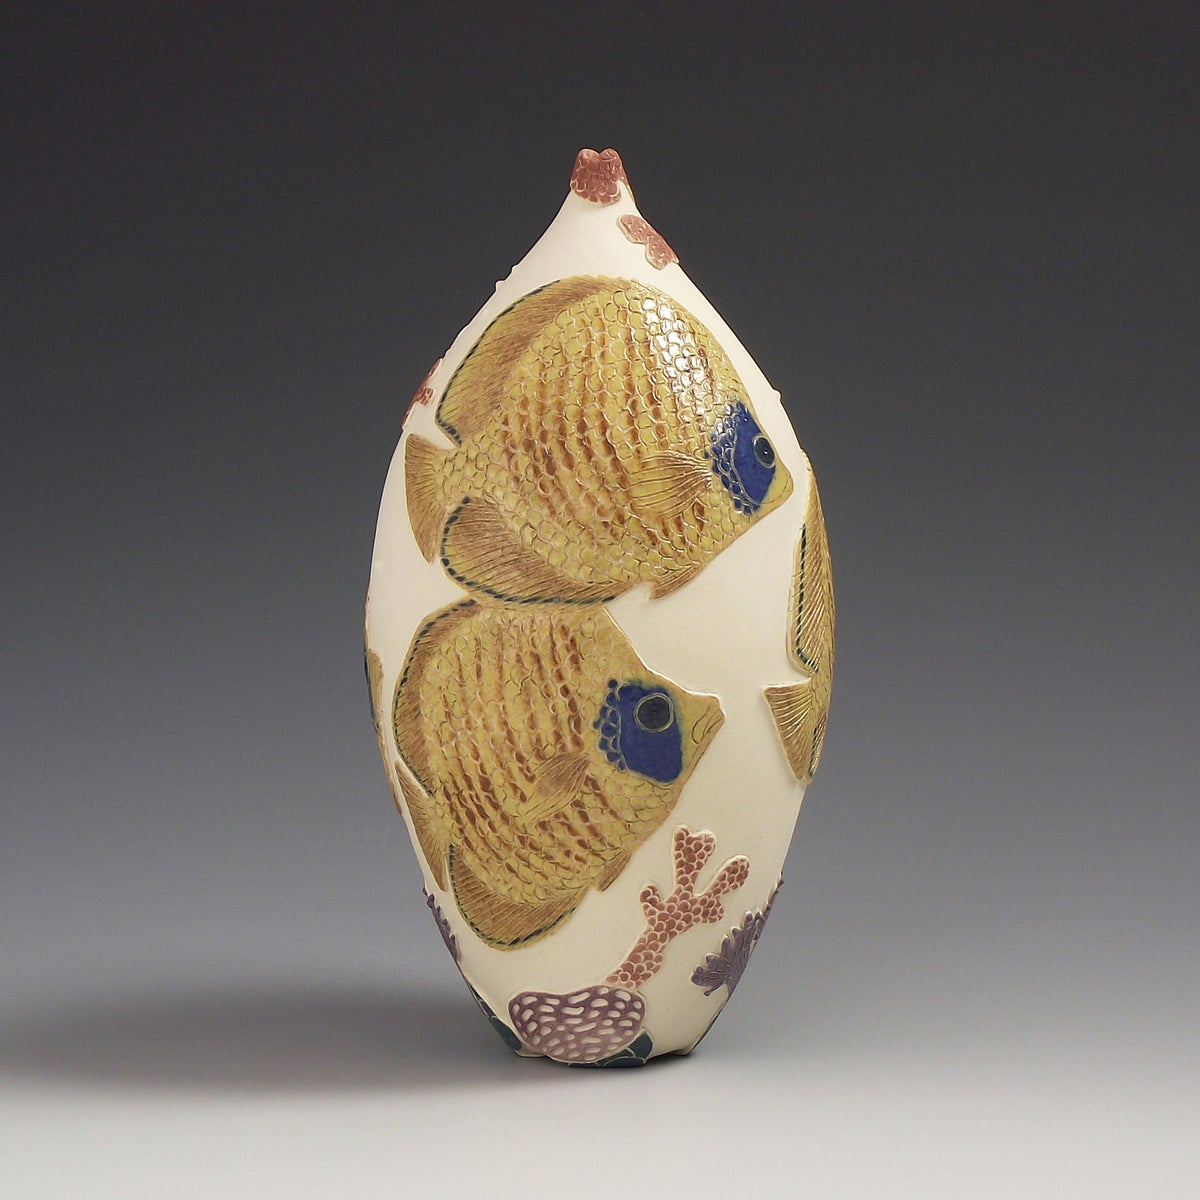 Butterfly fish sgraffito vessel